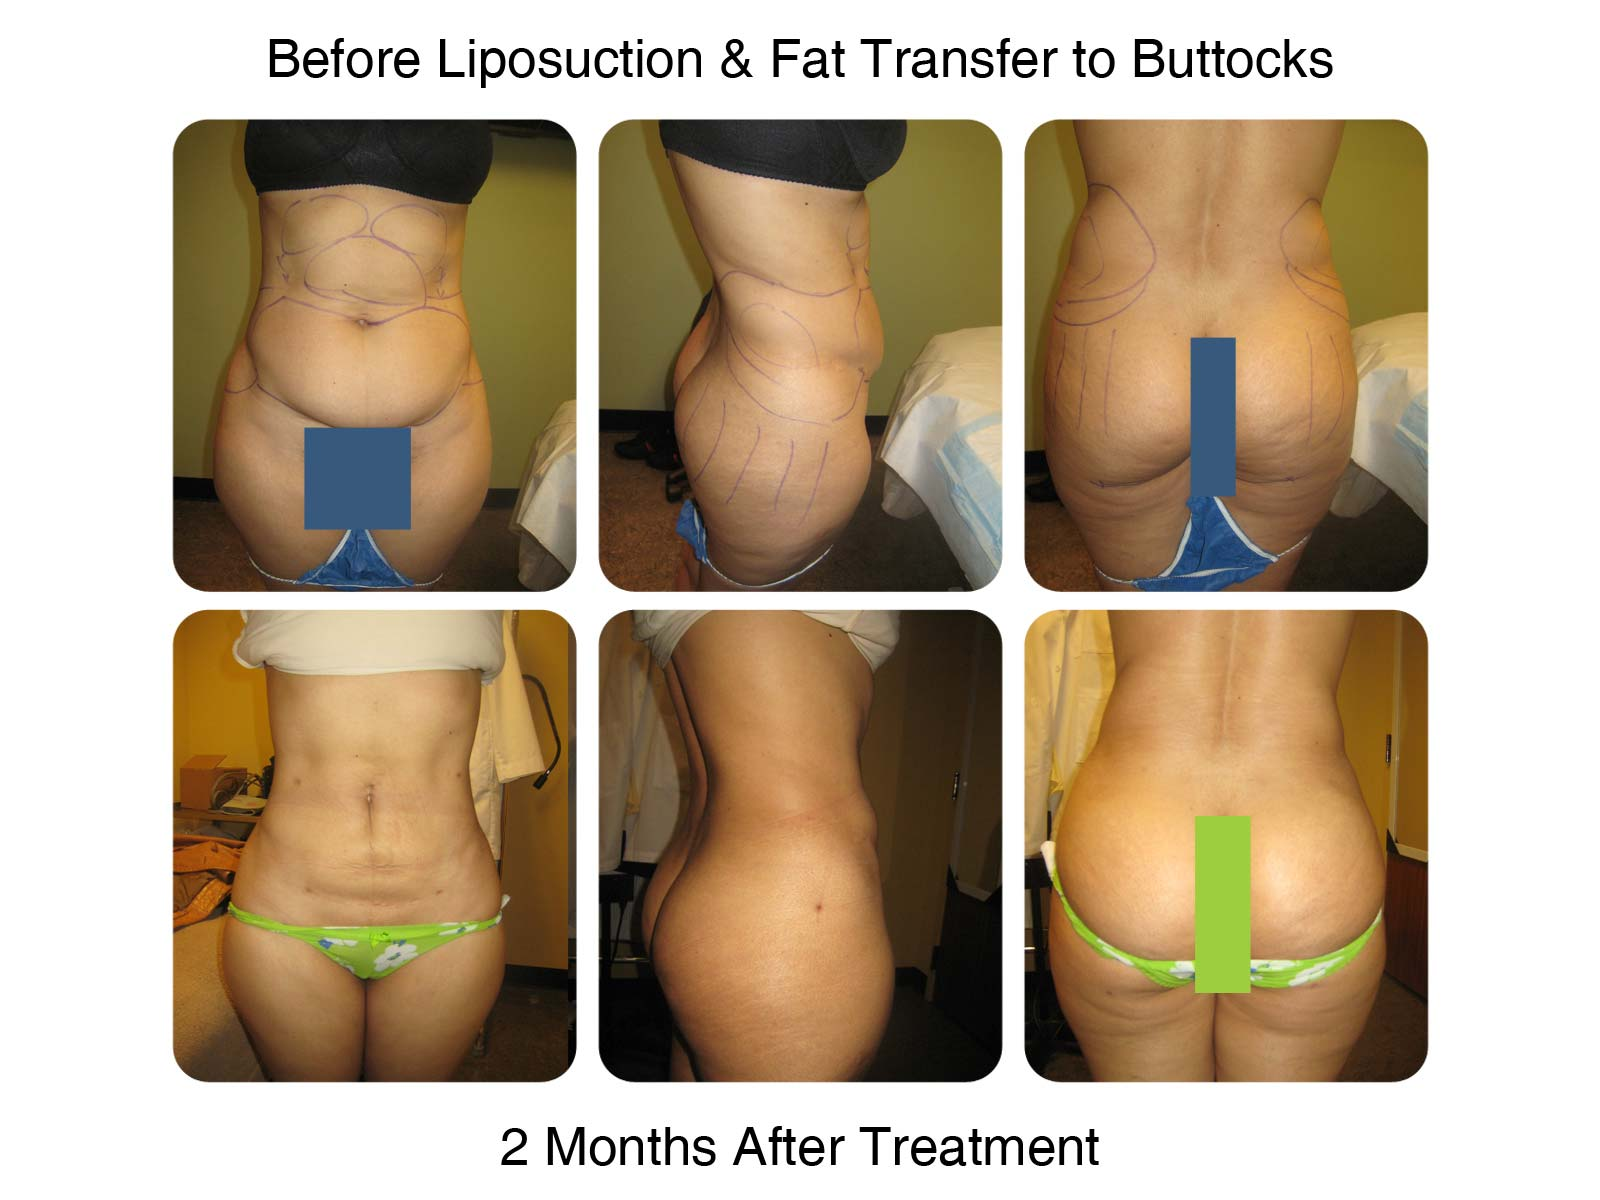 Fat Transfer to Butt